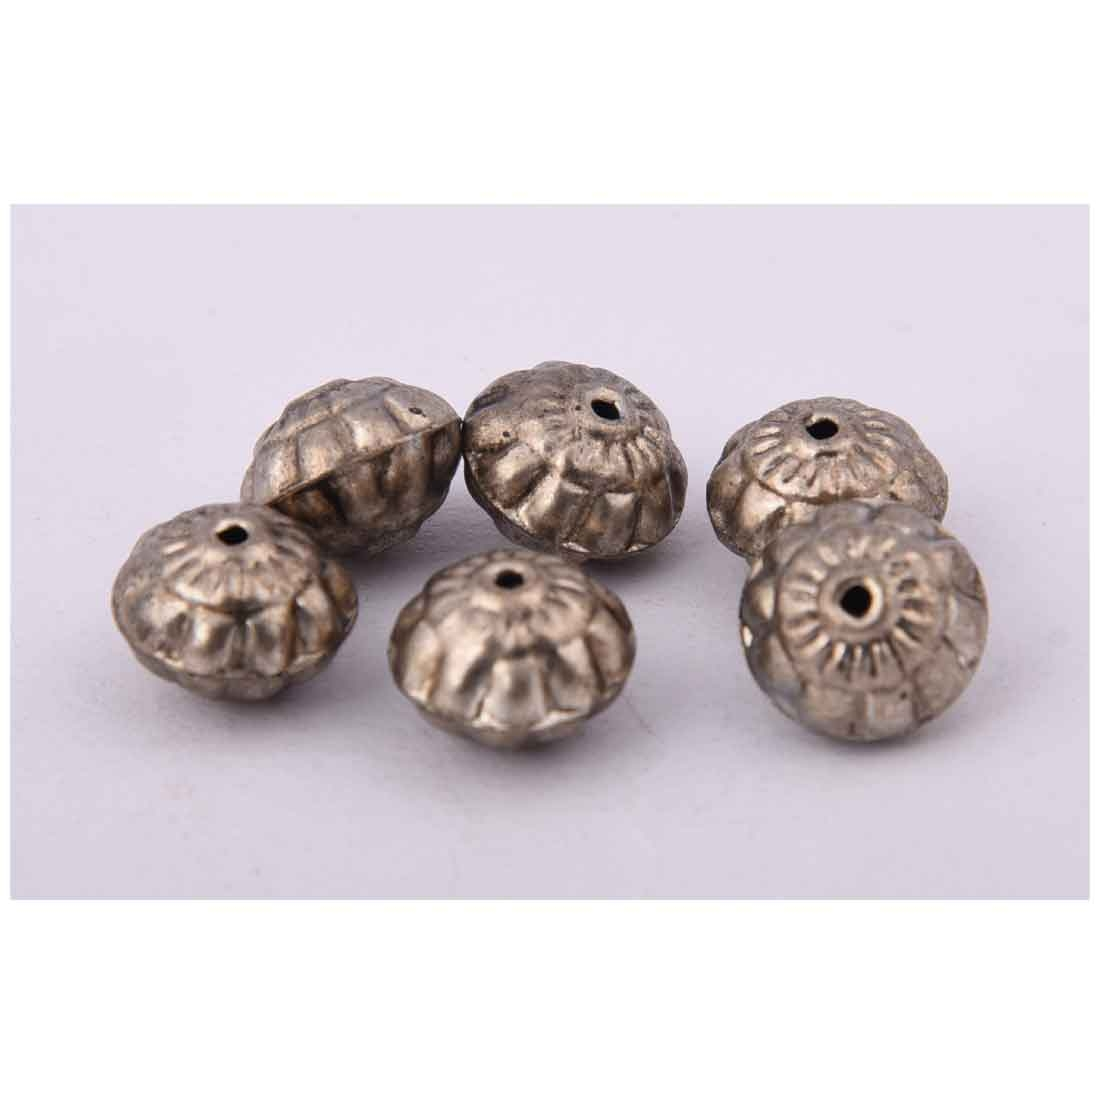 Beads India 1700060  Handcrafted Metal Beads/Discounts Above 500 pcs